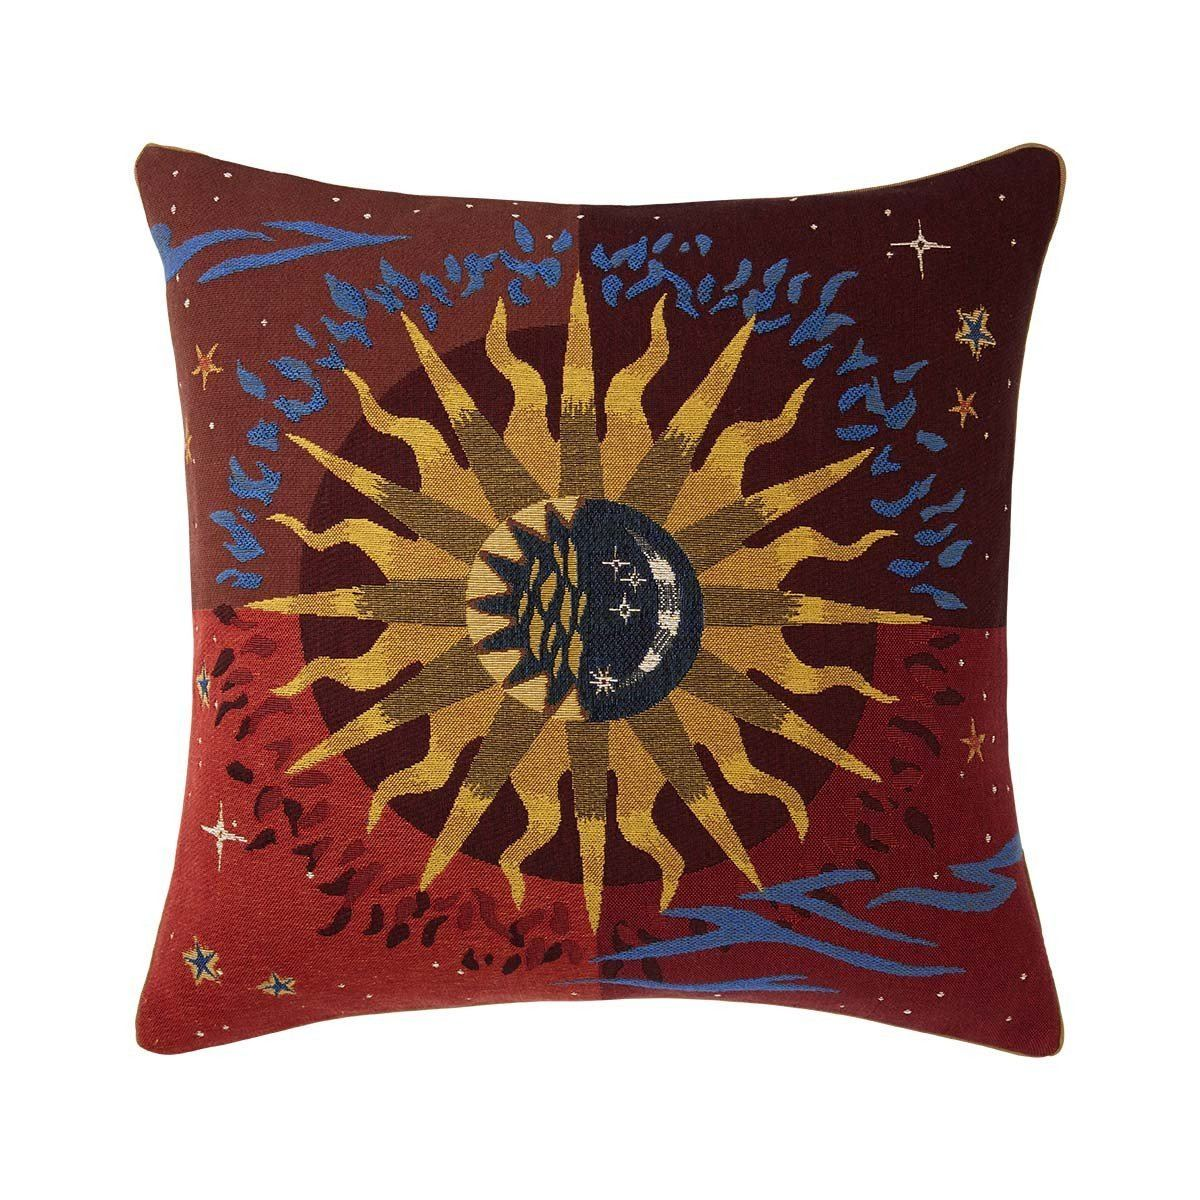 Soleil Rubis Decorative Pillow by Iosis | Fig Linens and Home